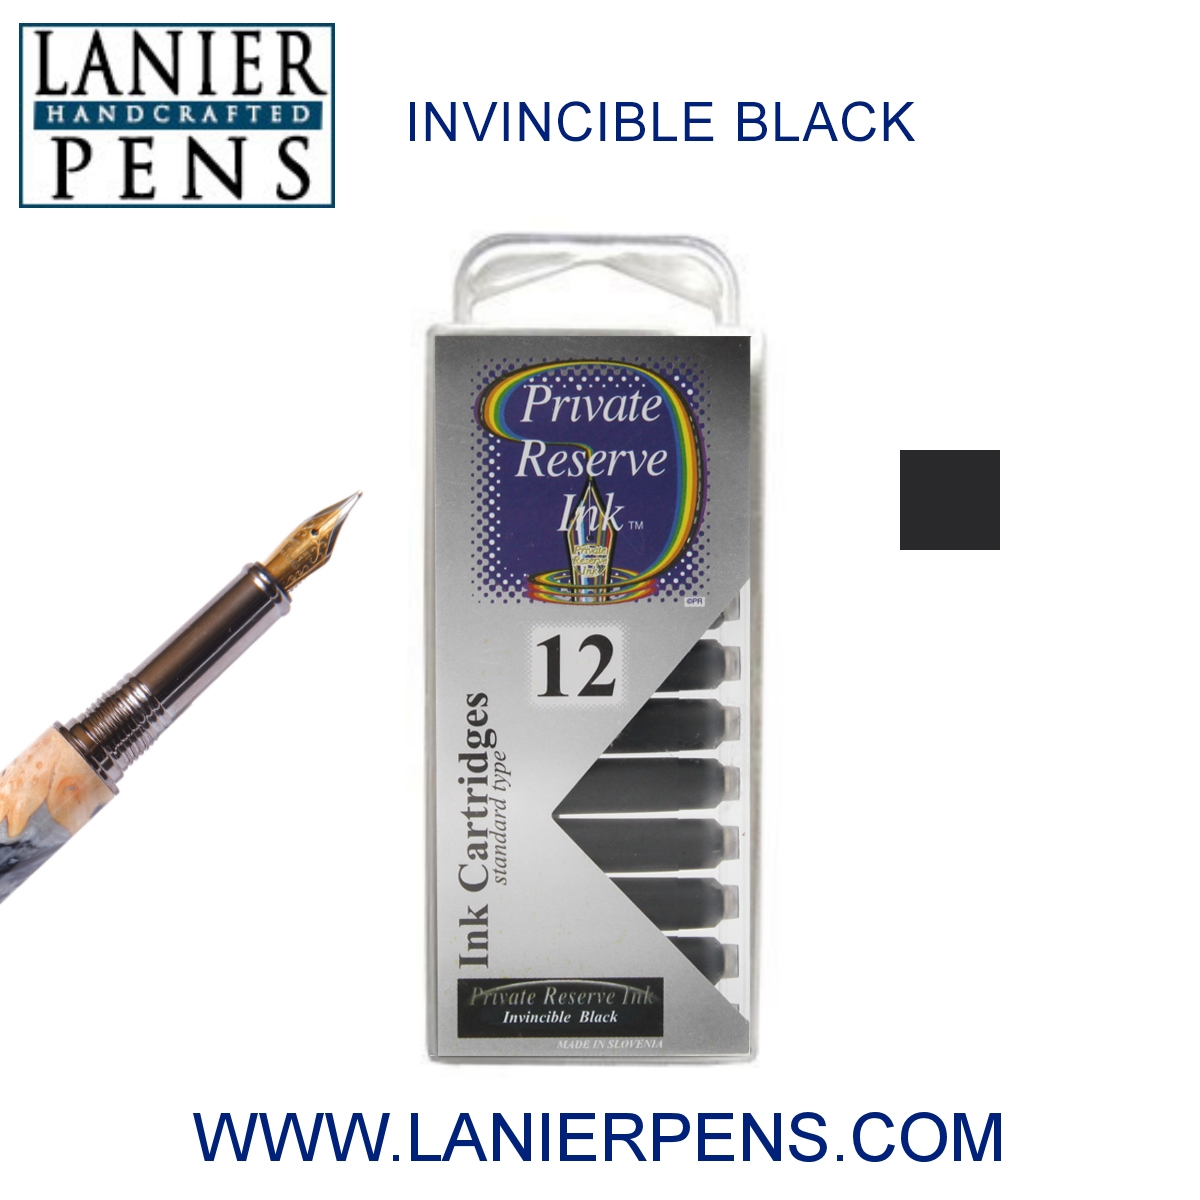 12 Pack - Private Reserve Ink, Universal Fountain Pen Ink Cartridges Clear Case, Invincible Black